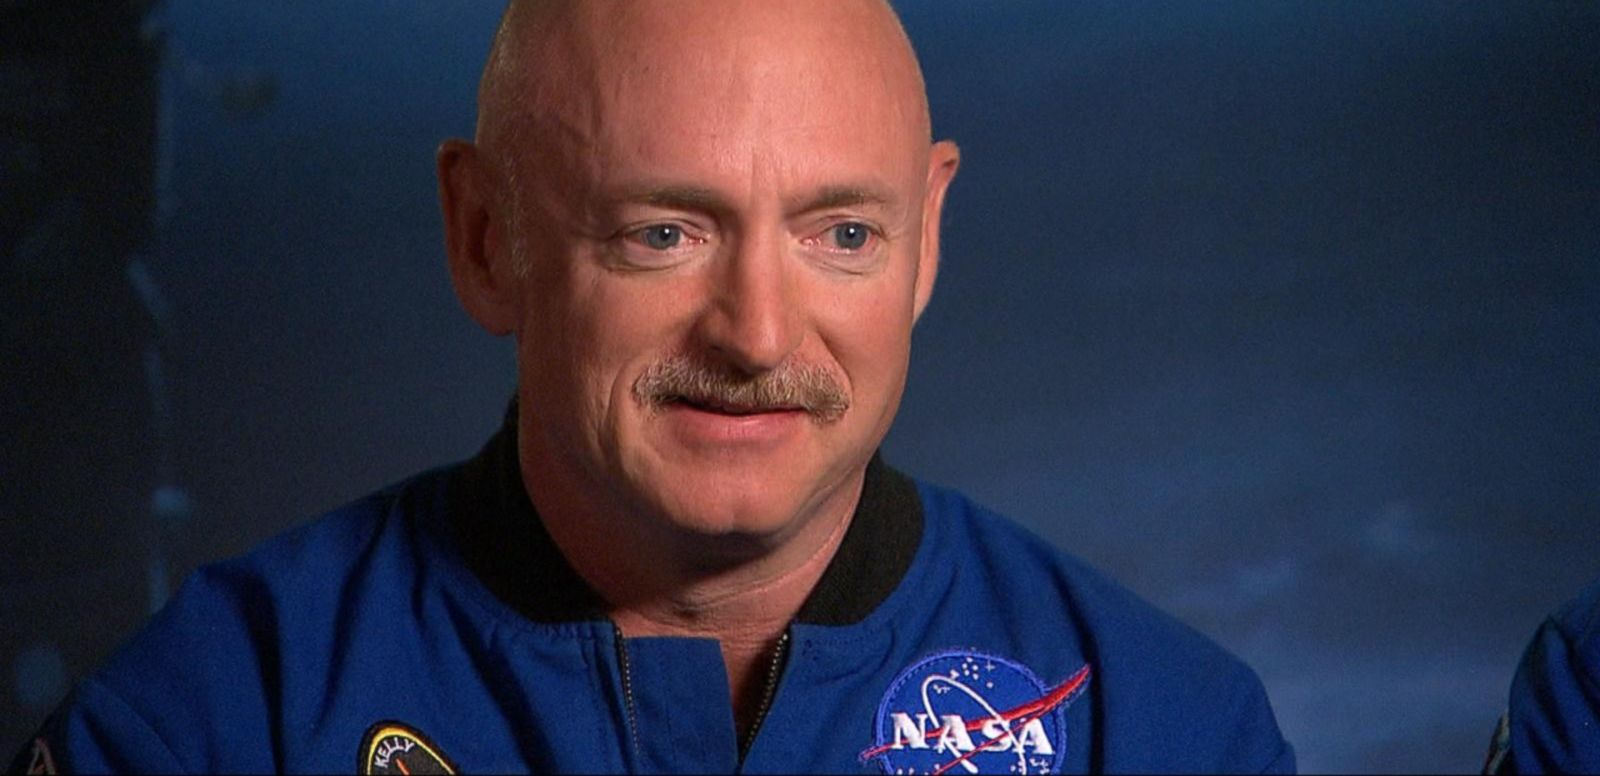 Astronaut Scott Kelly Blasts Off for #YearinSpace